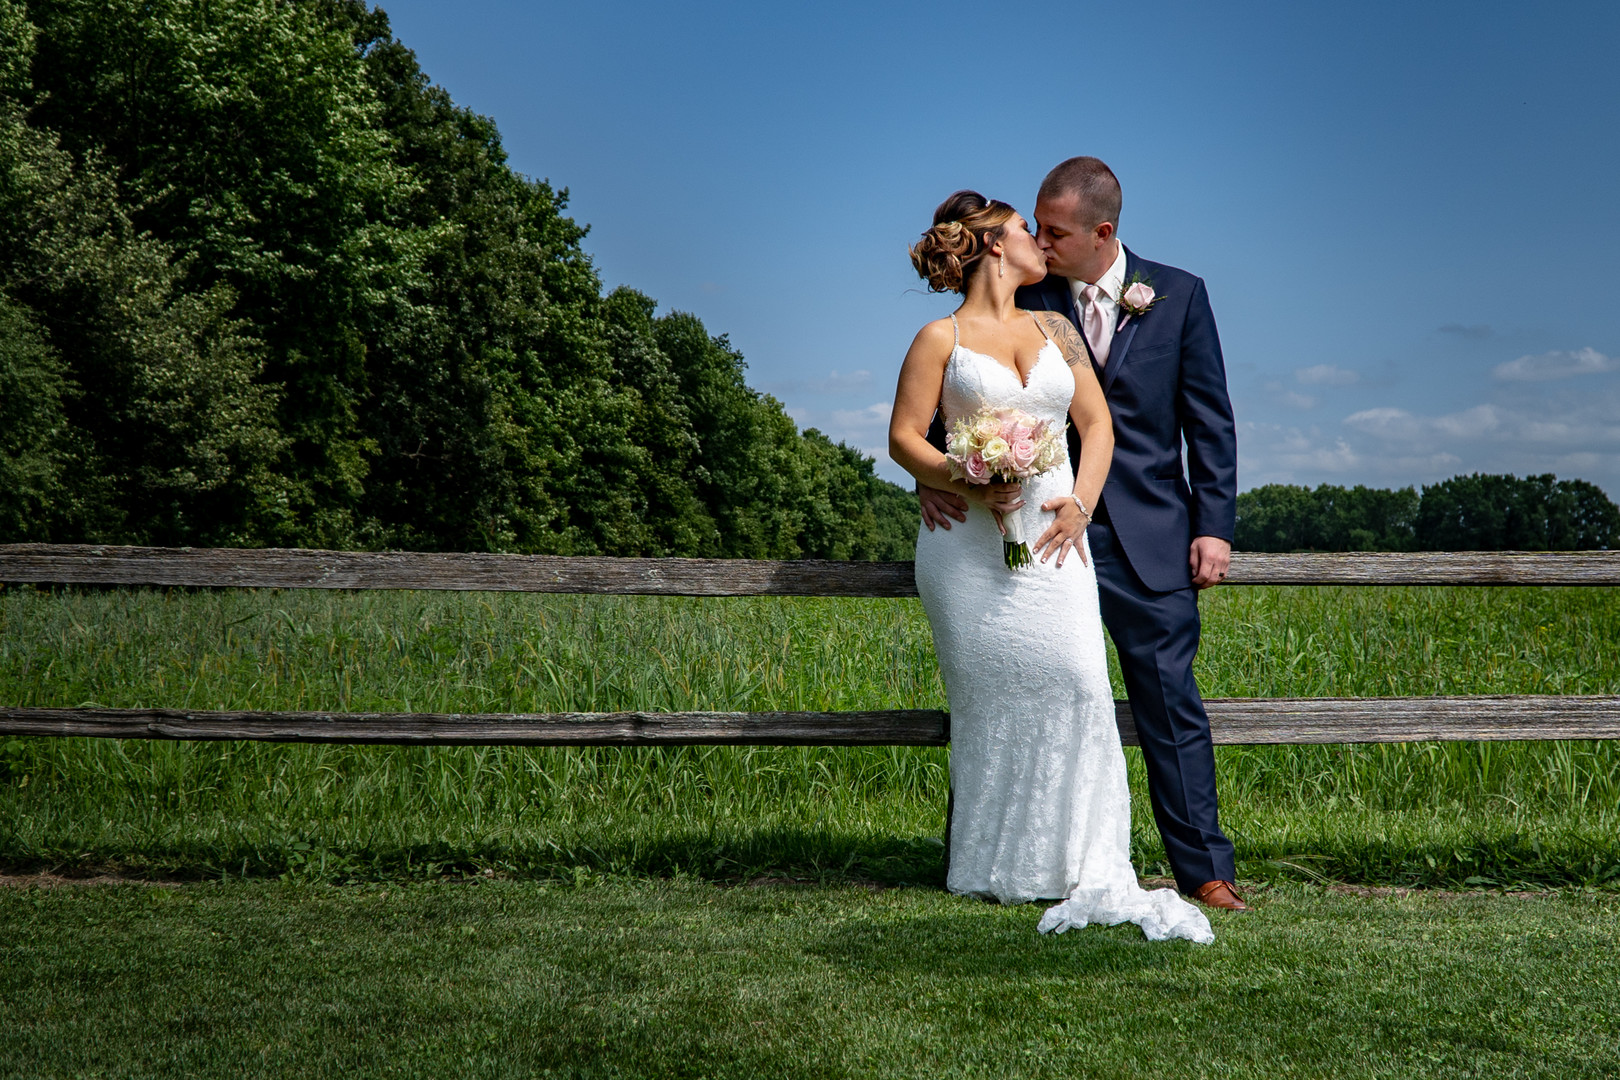 Belling_Belling_JoshRussellWeddings_DSC08541_big.jpg